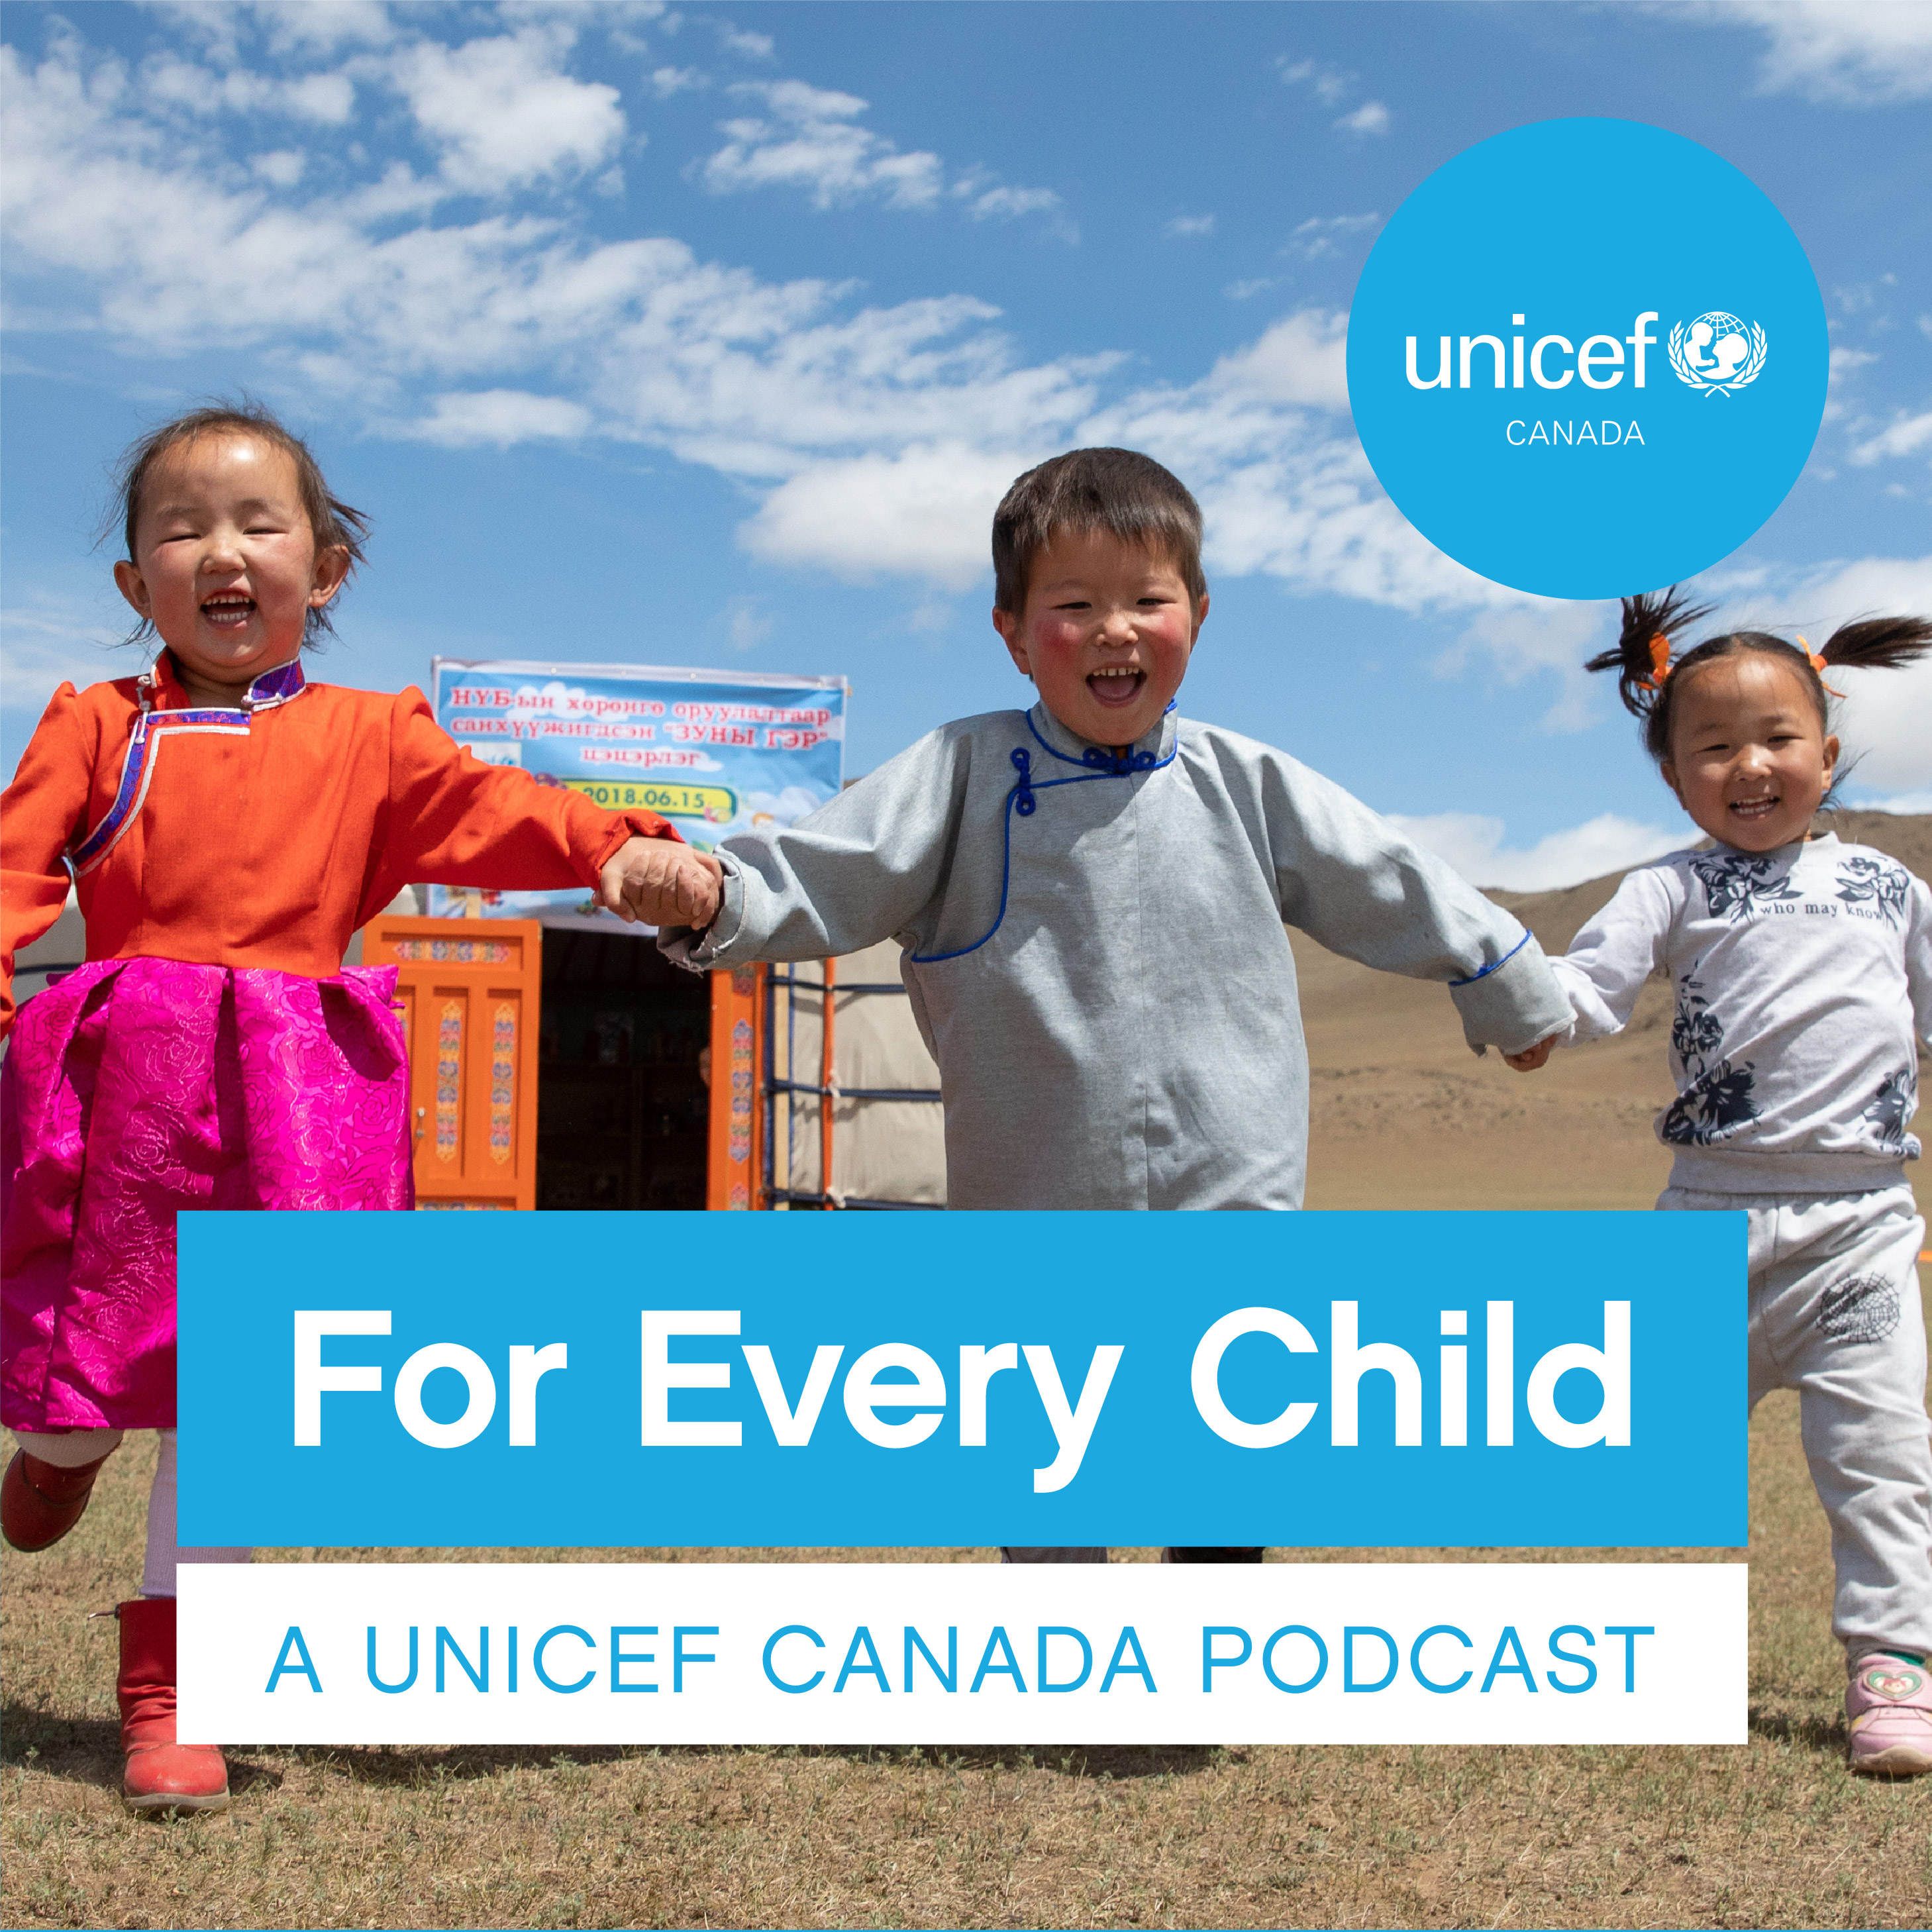 For Every Child: A UNICEF Canada podcast show art